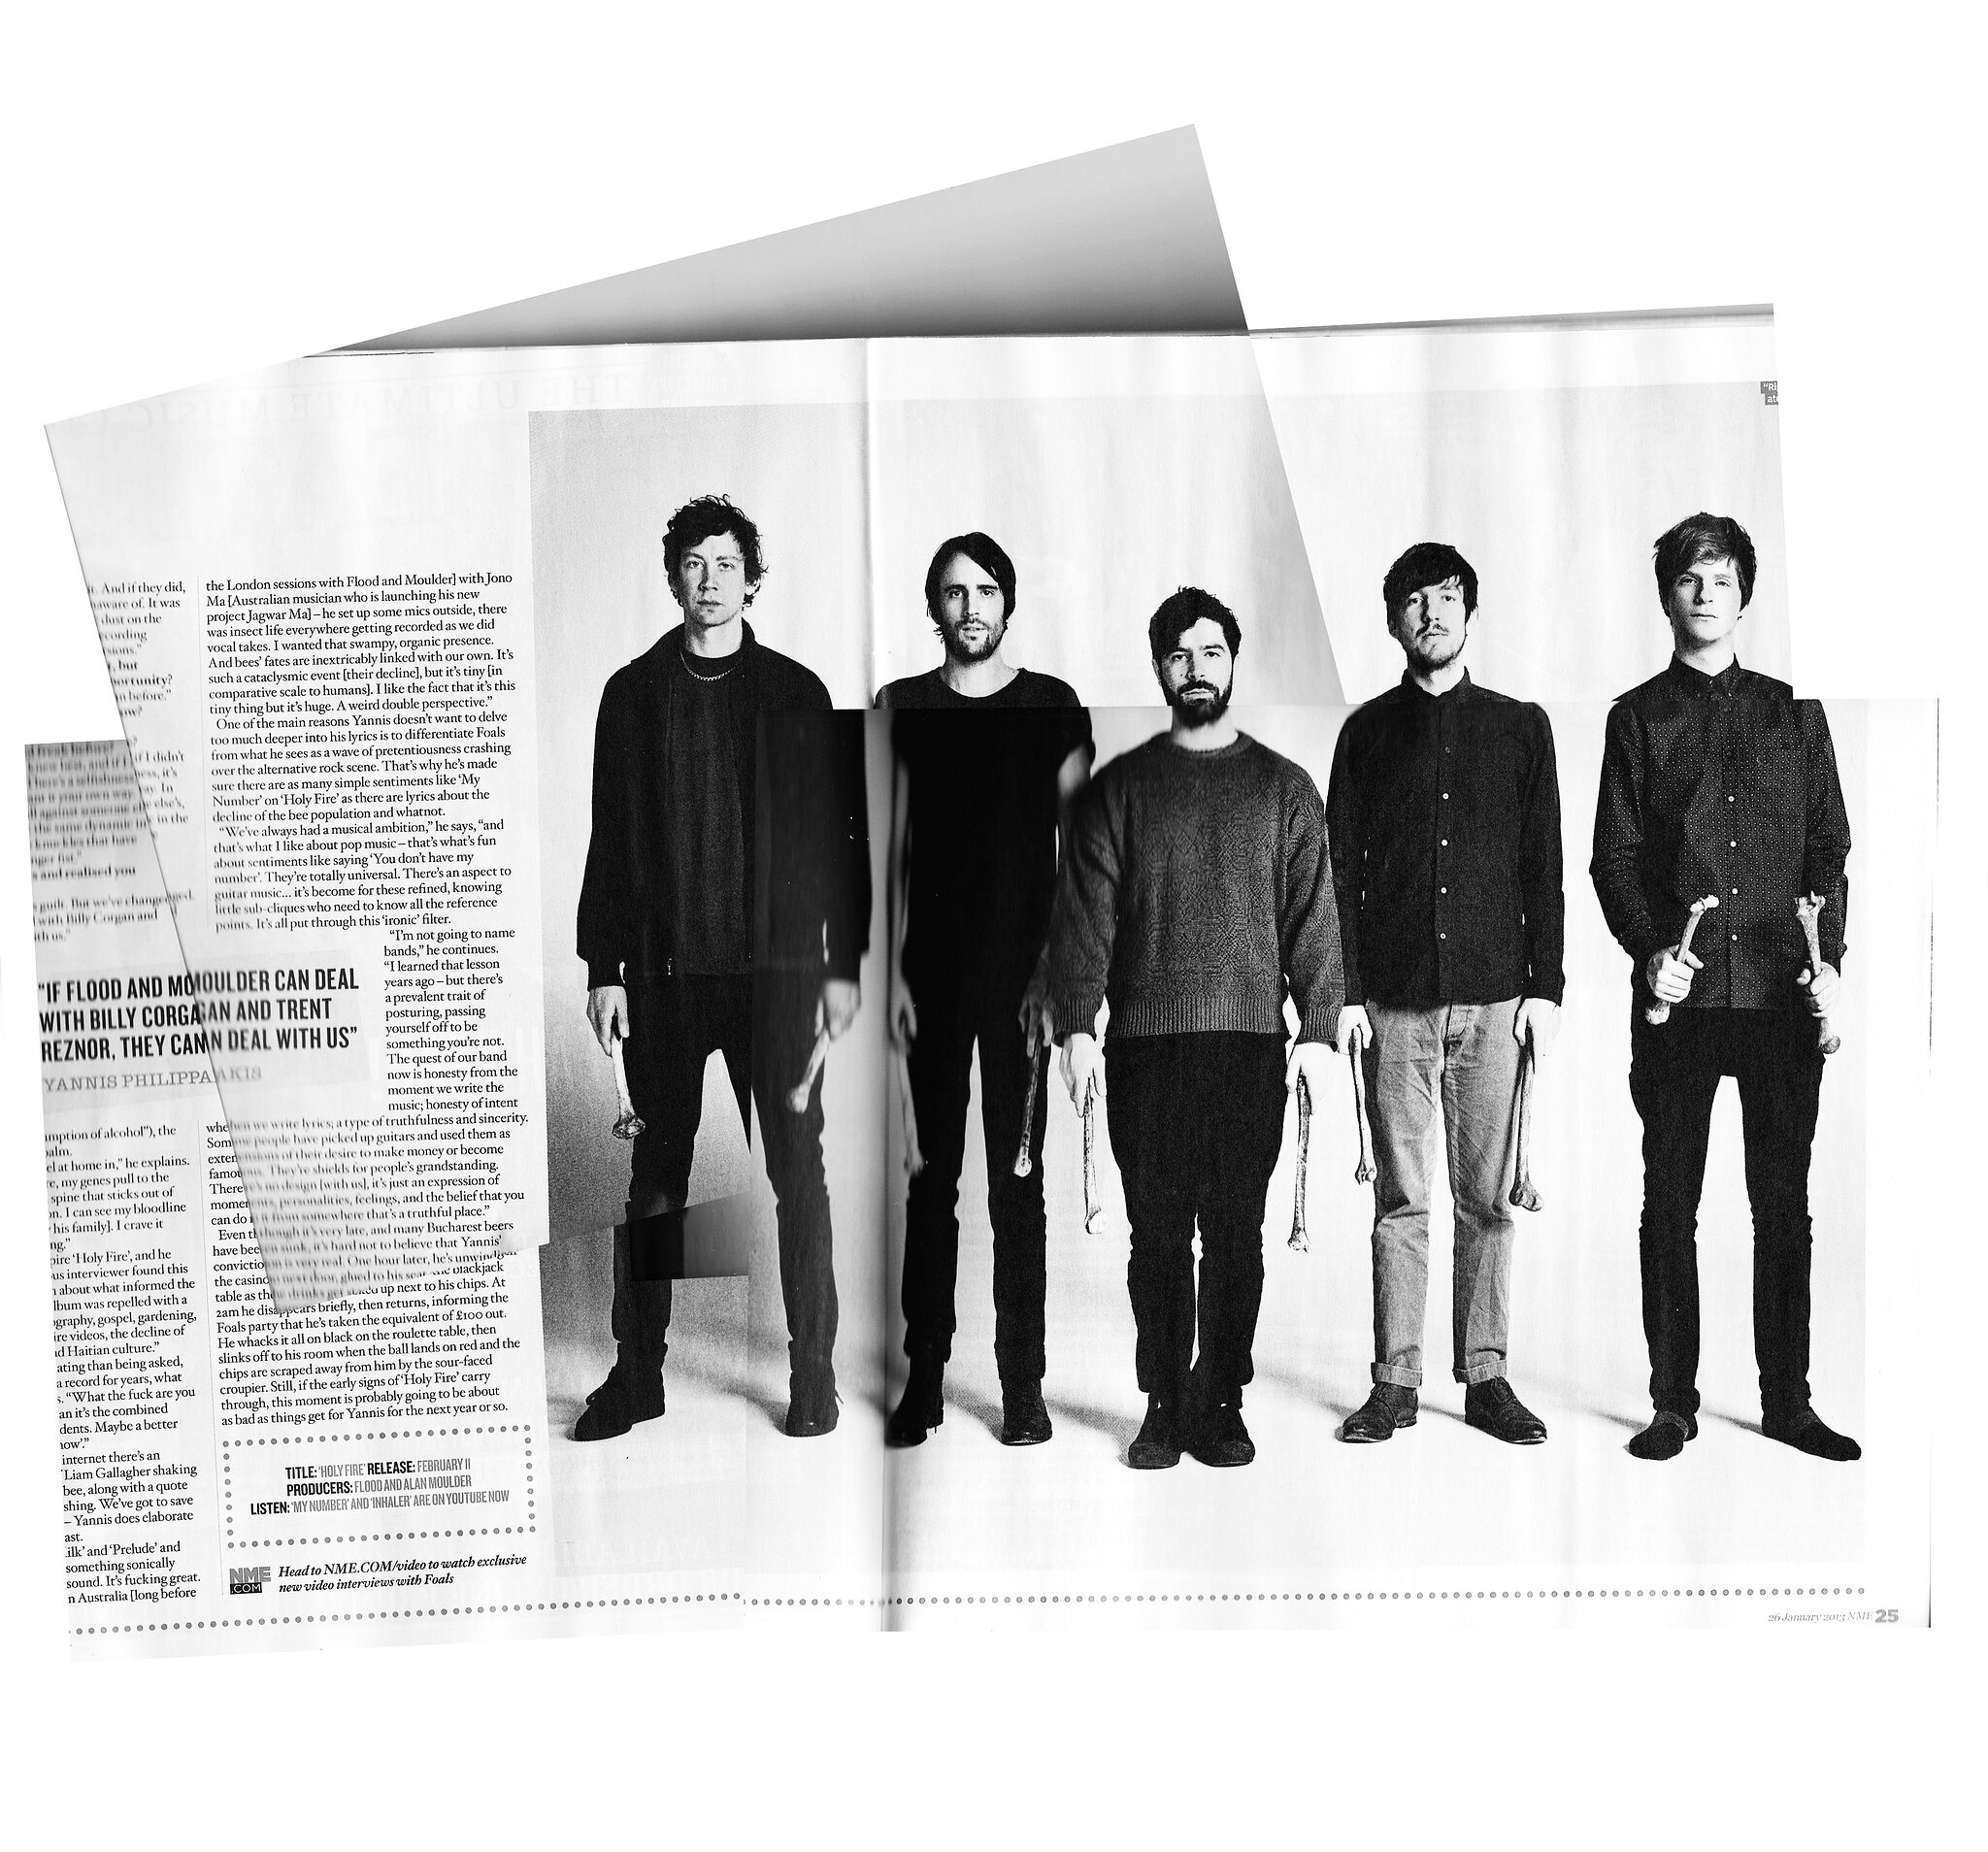 foals for the nme